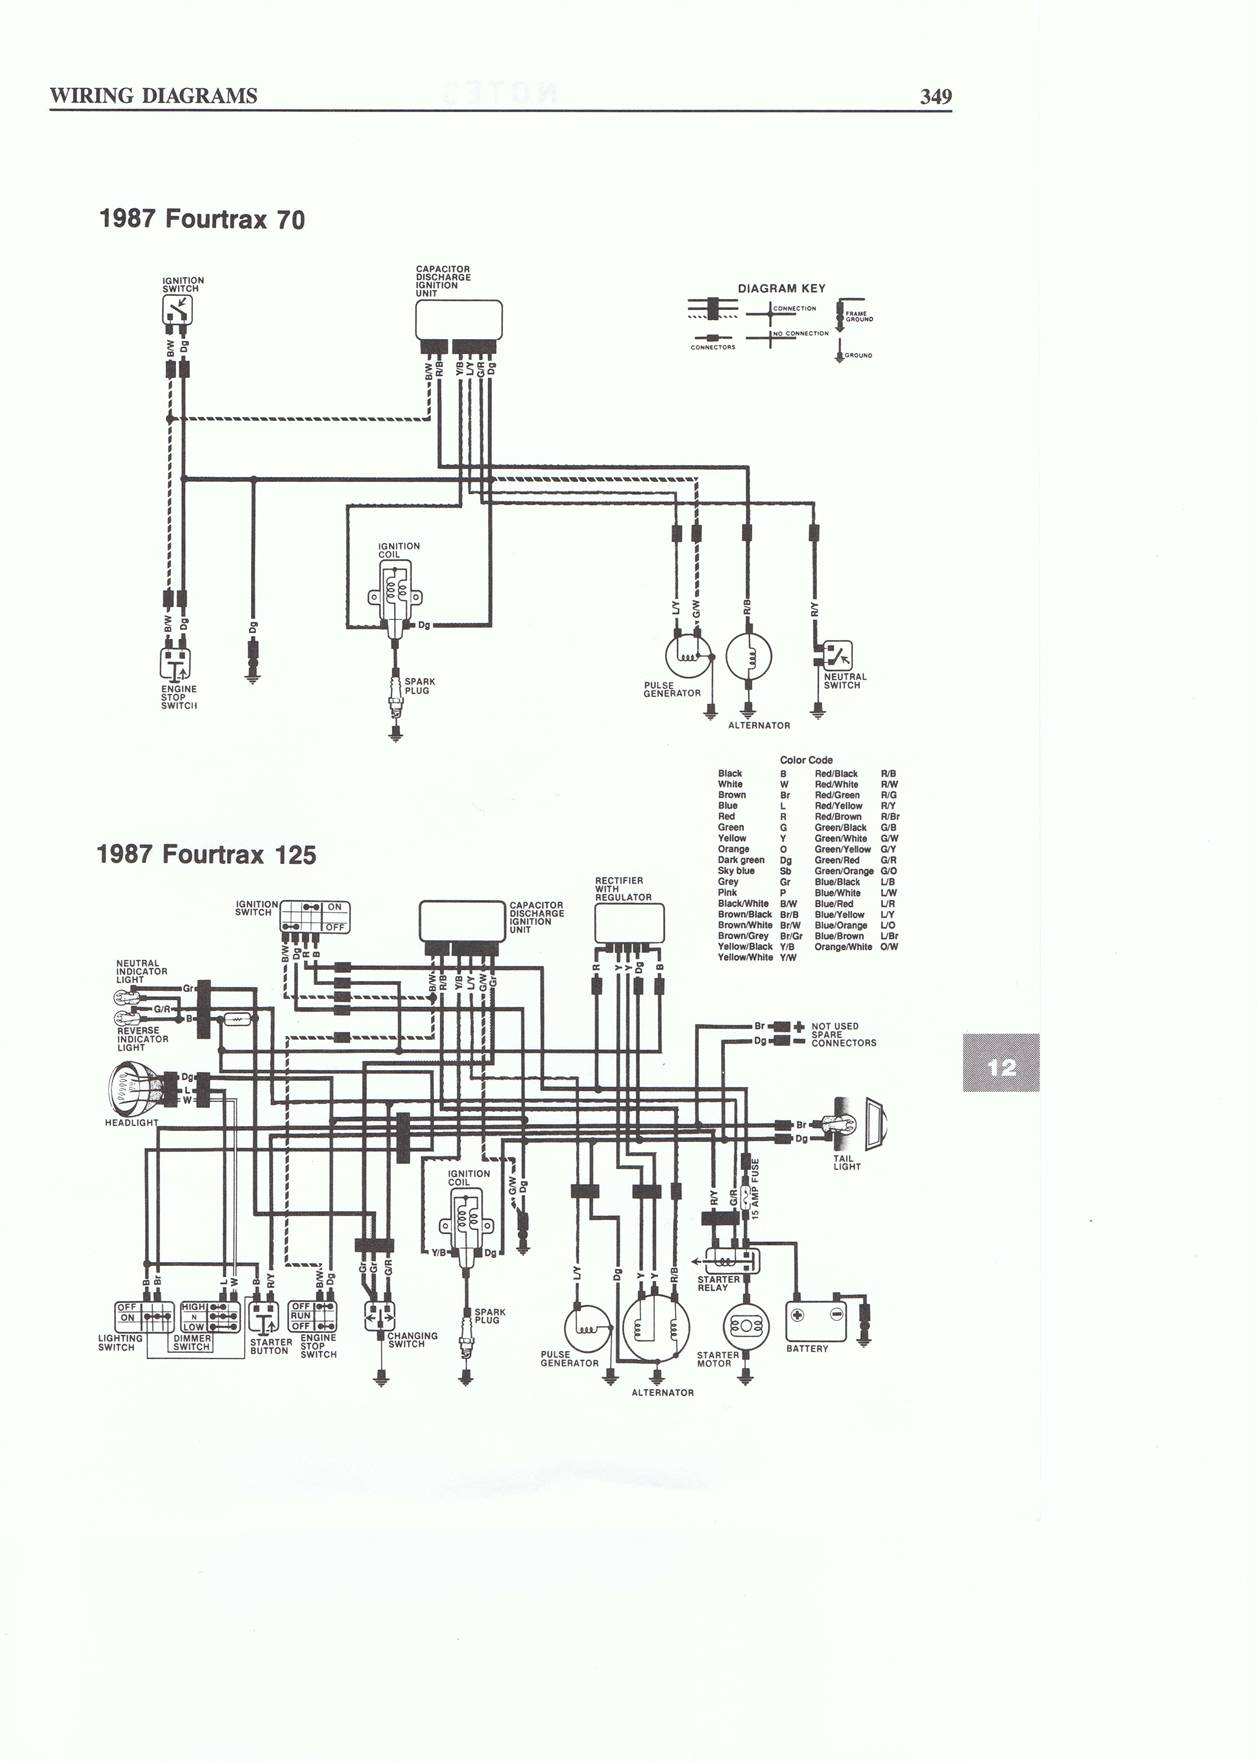 gy6 engine wiring diagram?t=1398725710 gy6 engine wiring diagram gy6 wiring diagram at mifinder.co